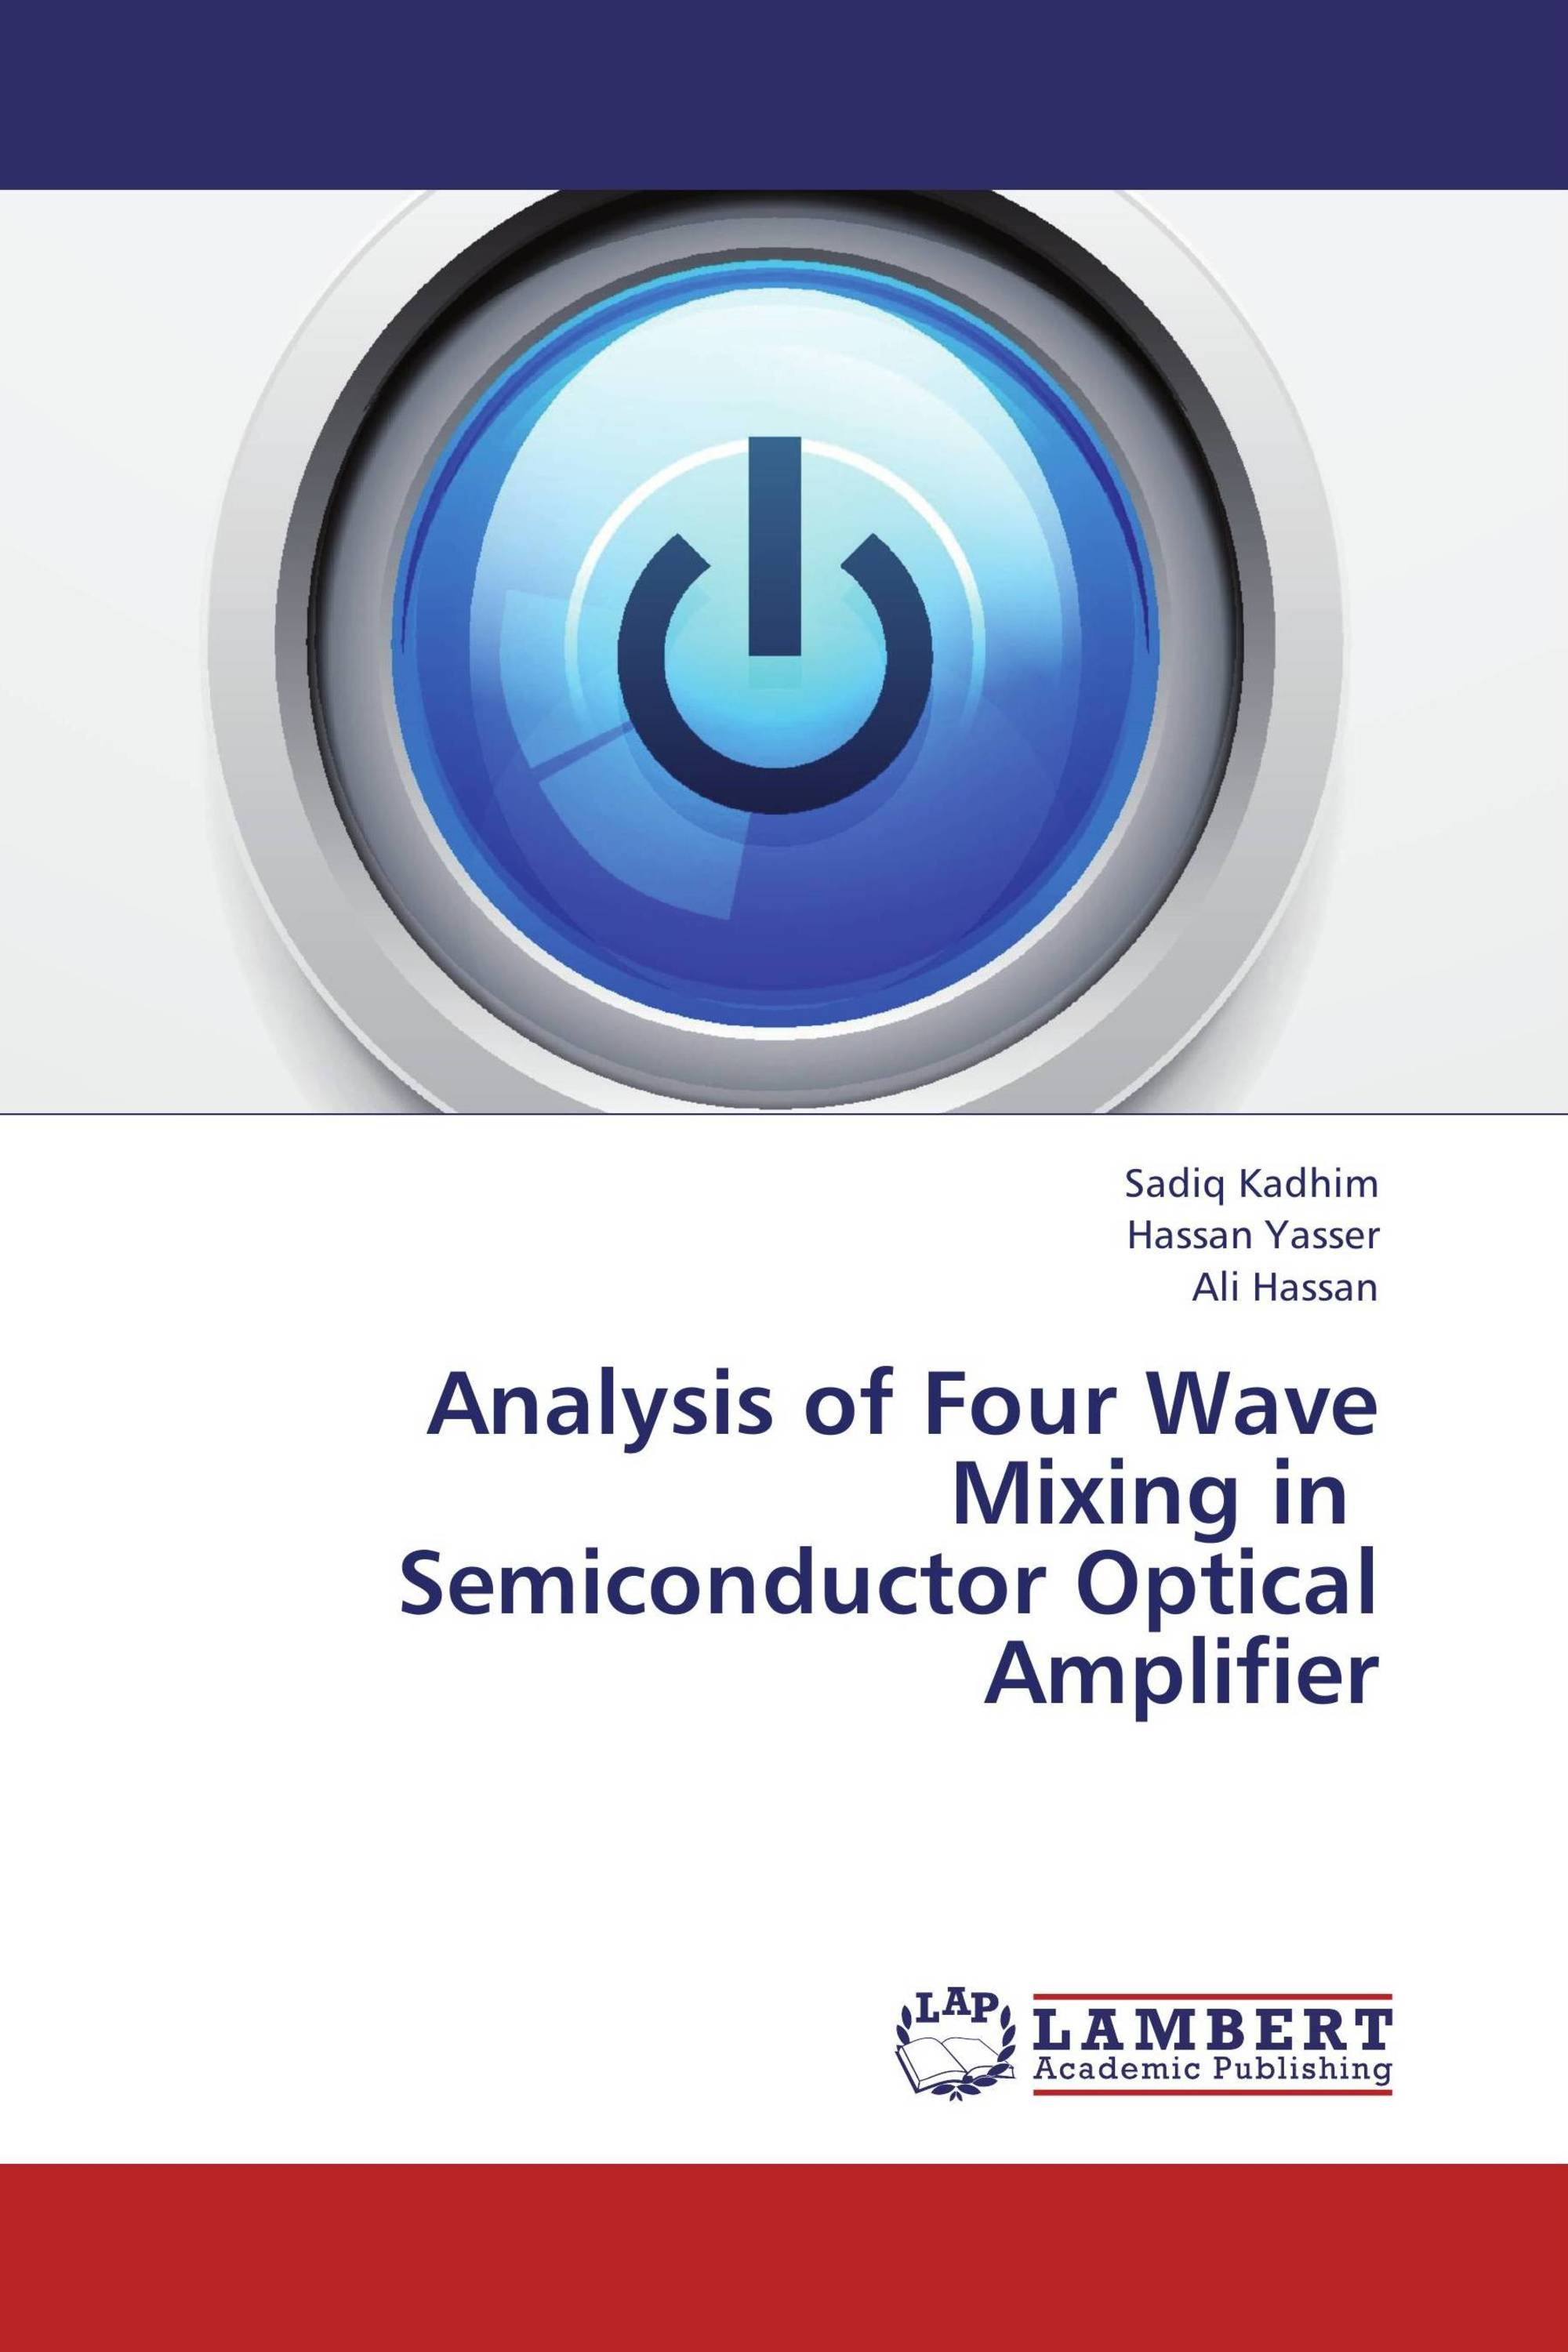 thesis on semiconductors